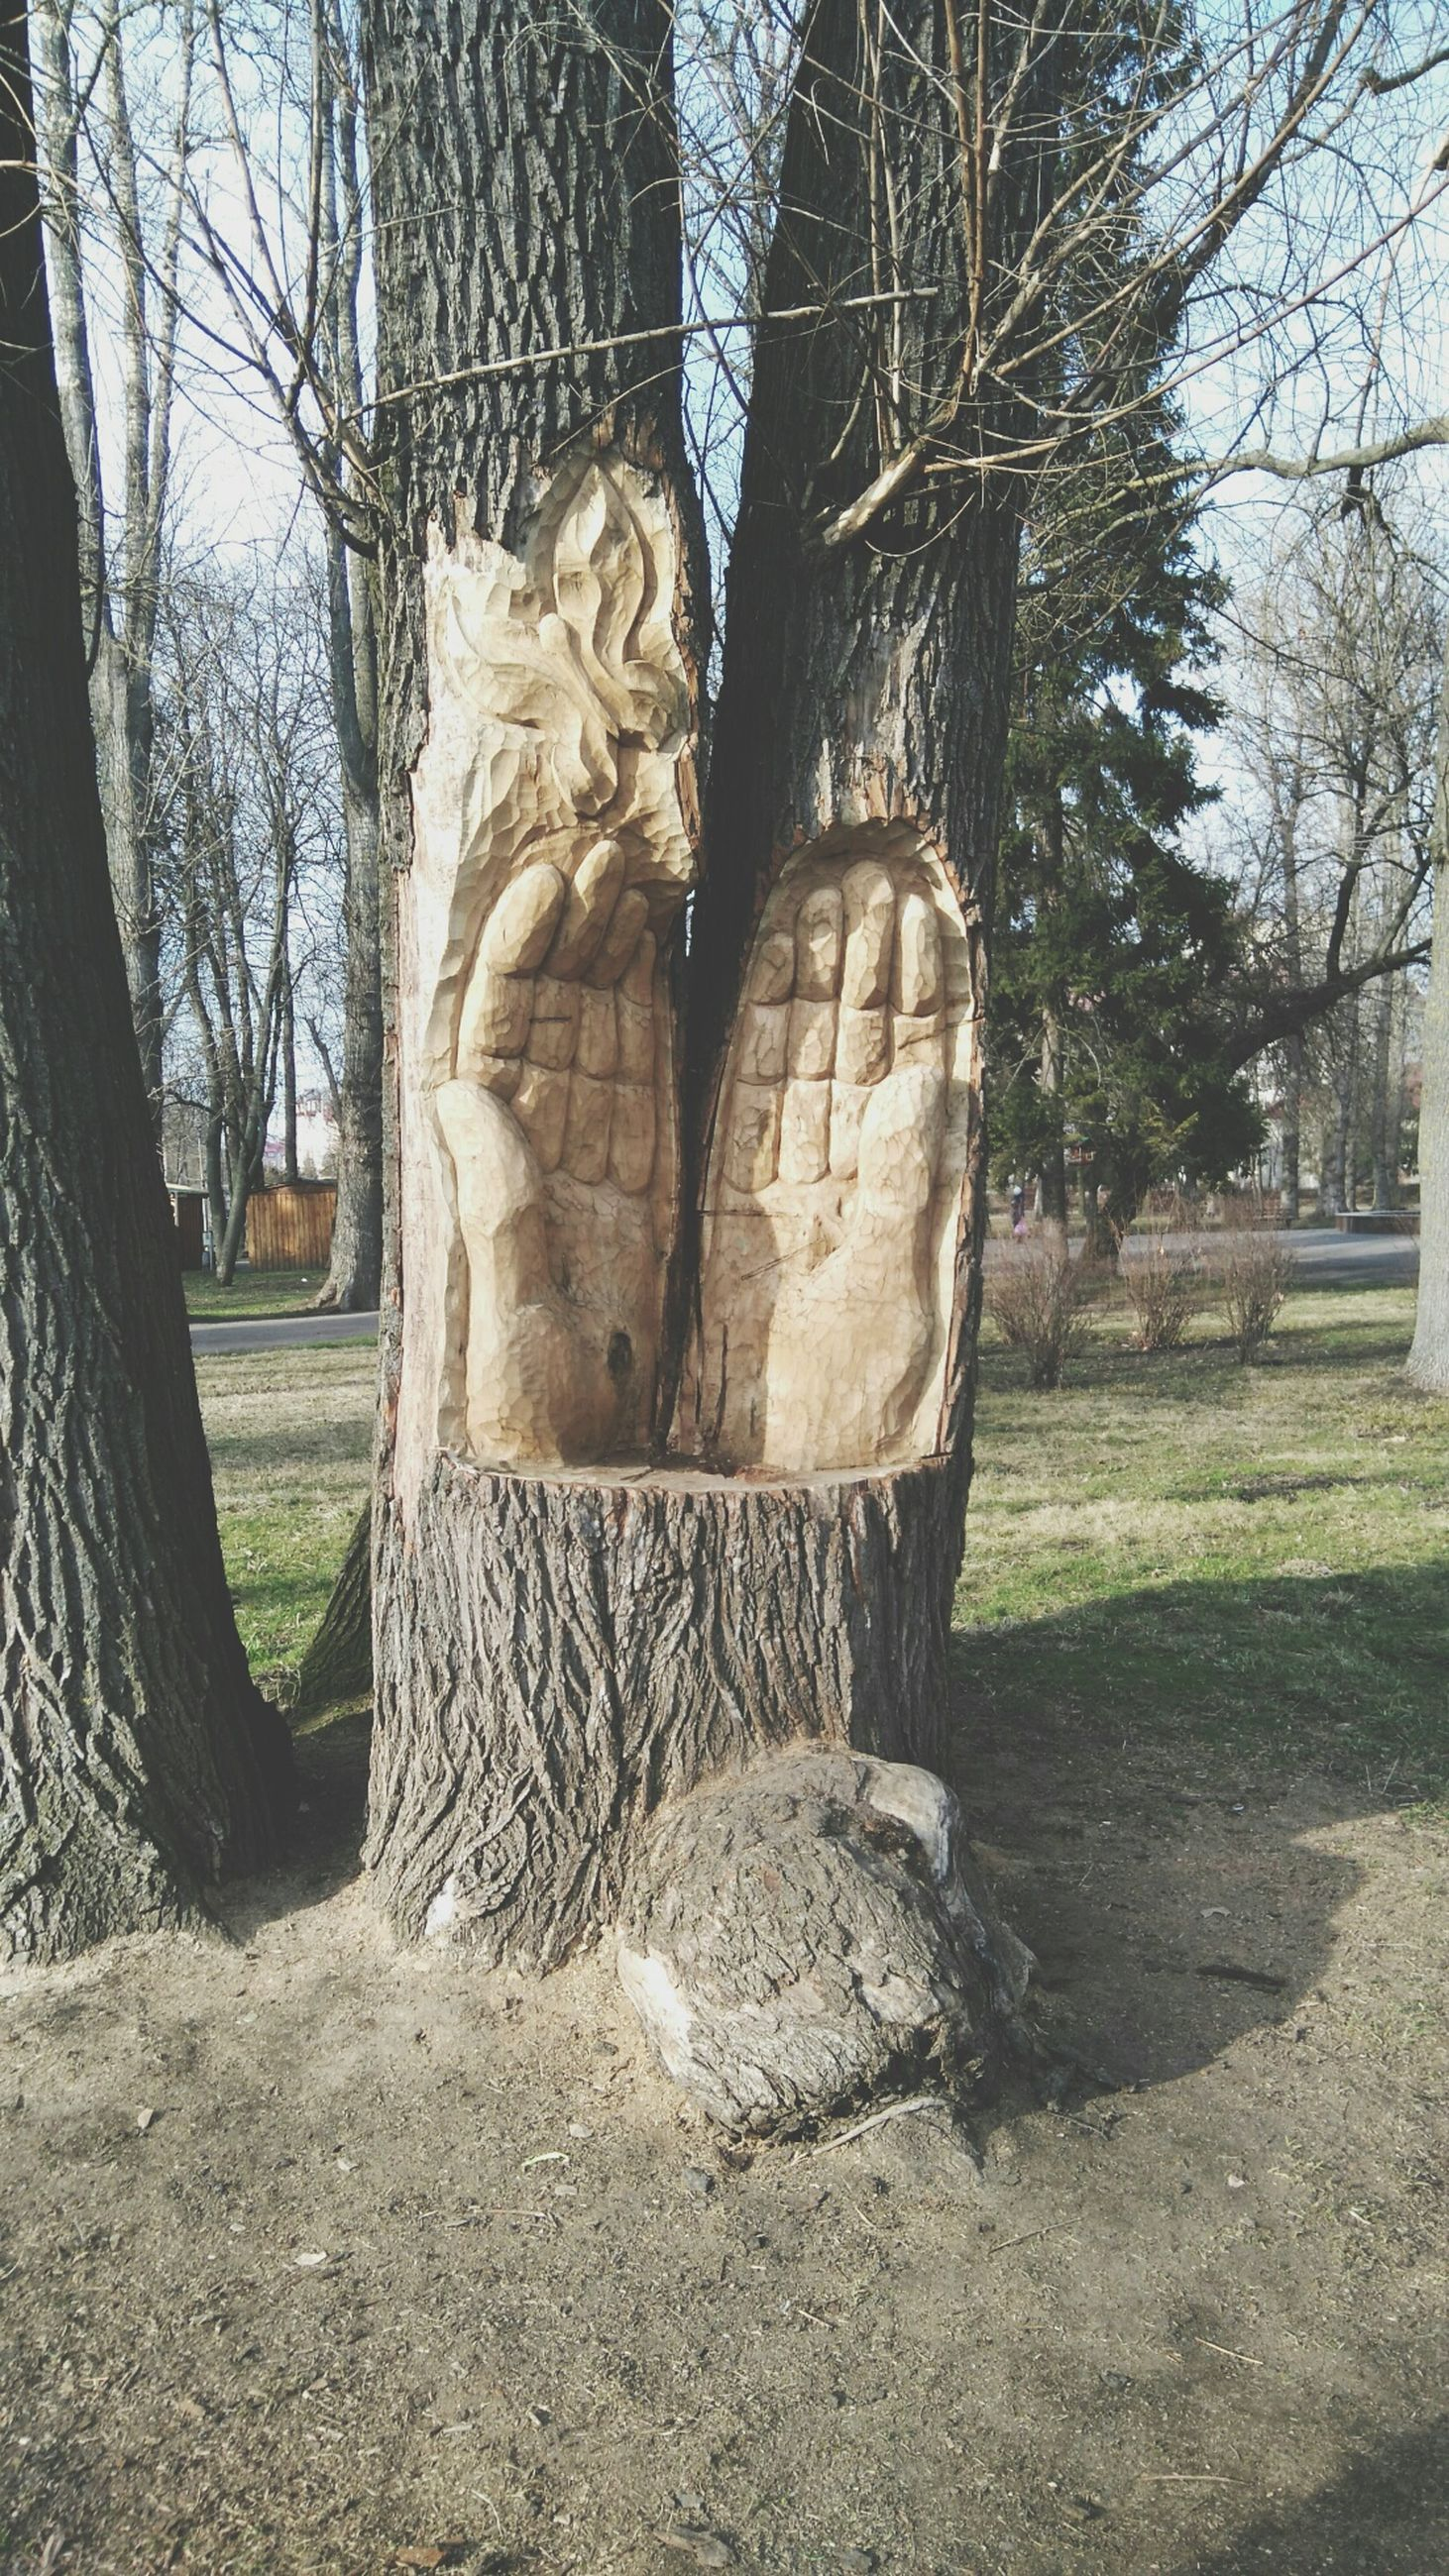 tree, art and craft, art, statue, sculpture, creativity, human representation, tree trunk, bare tree, branch, sunlight, day, park - man made space, animal representation, nature, shadow, outdoors, no people